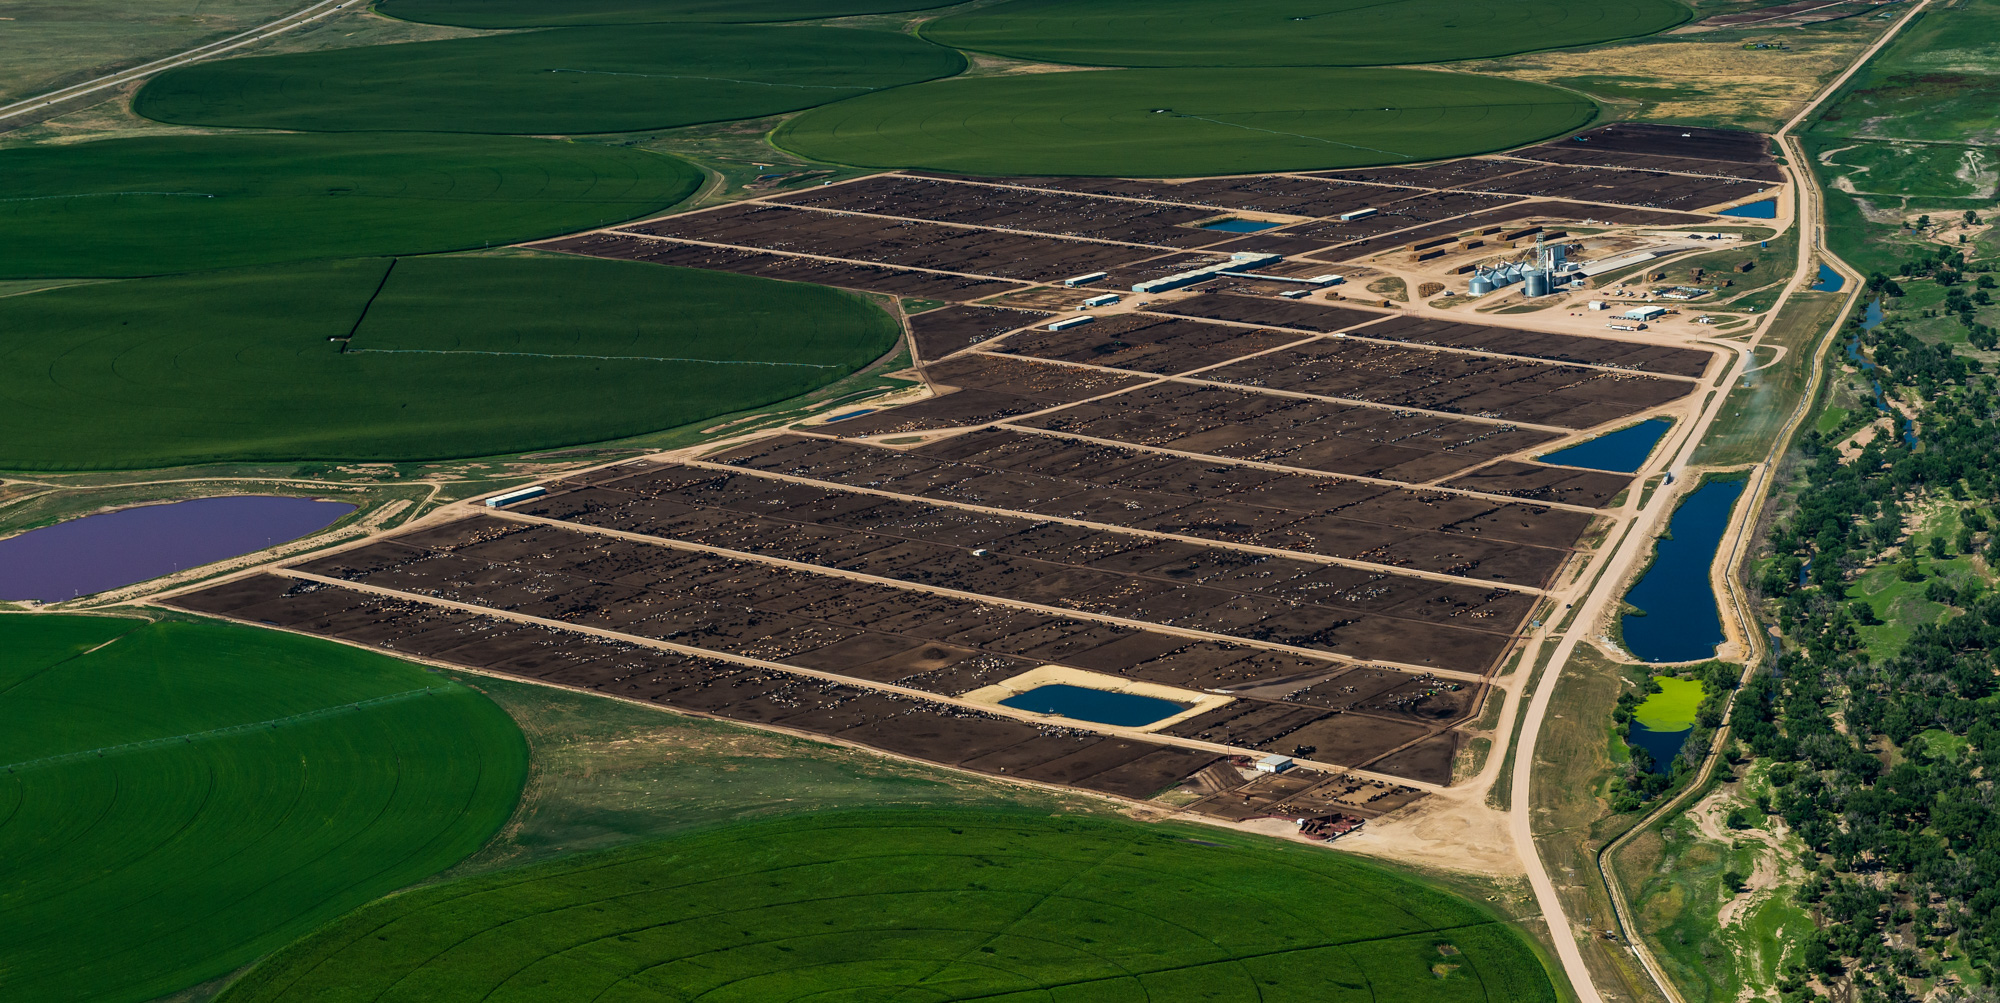 Aerial view of the Dinklage Feed Yards at the Proctor, Colorado facility.